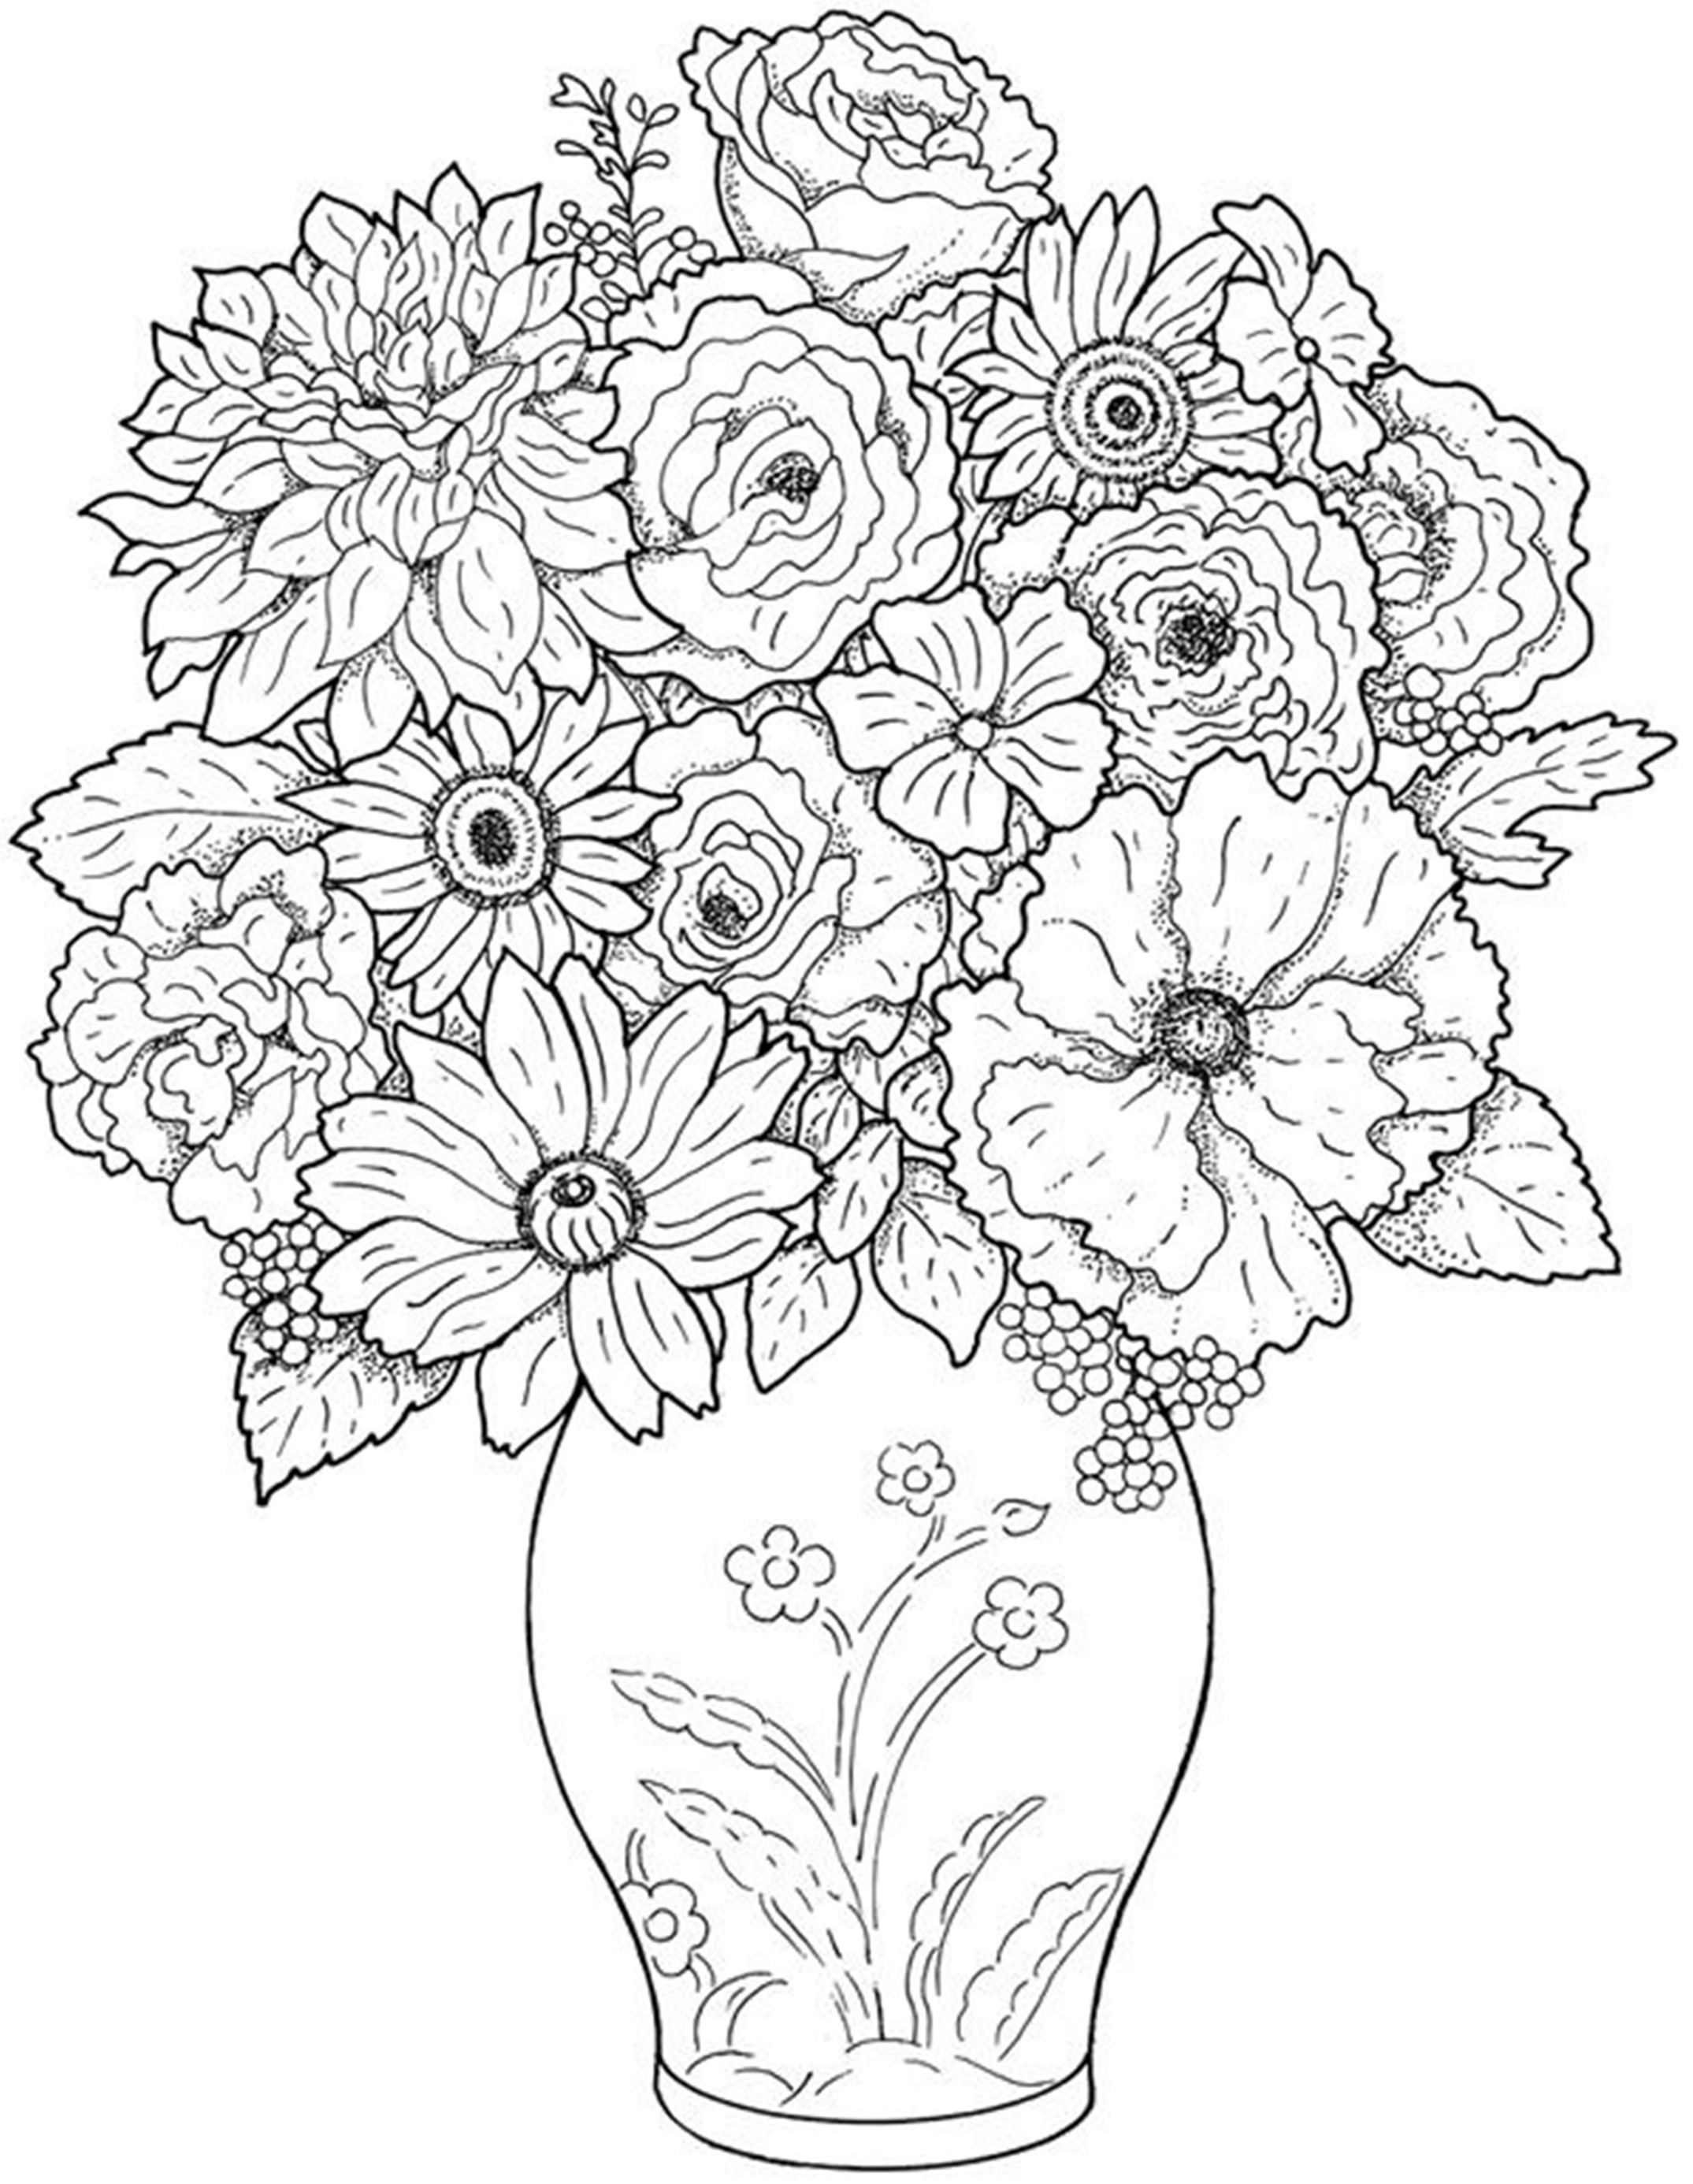 coloring pages flowers printable free printable flower coloring pages for kids coloring pages printable flowers